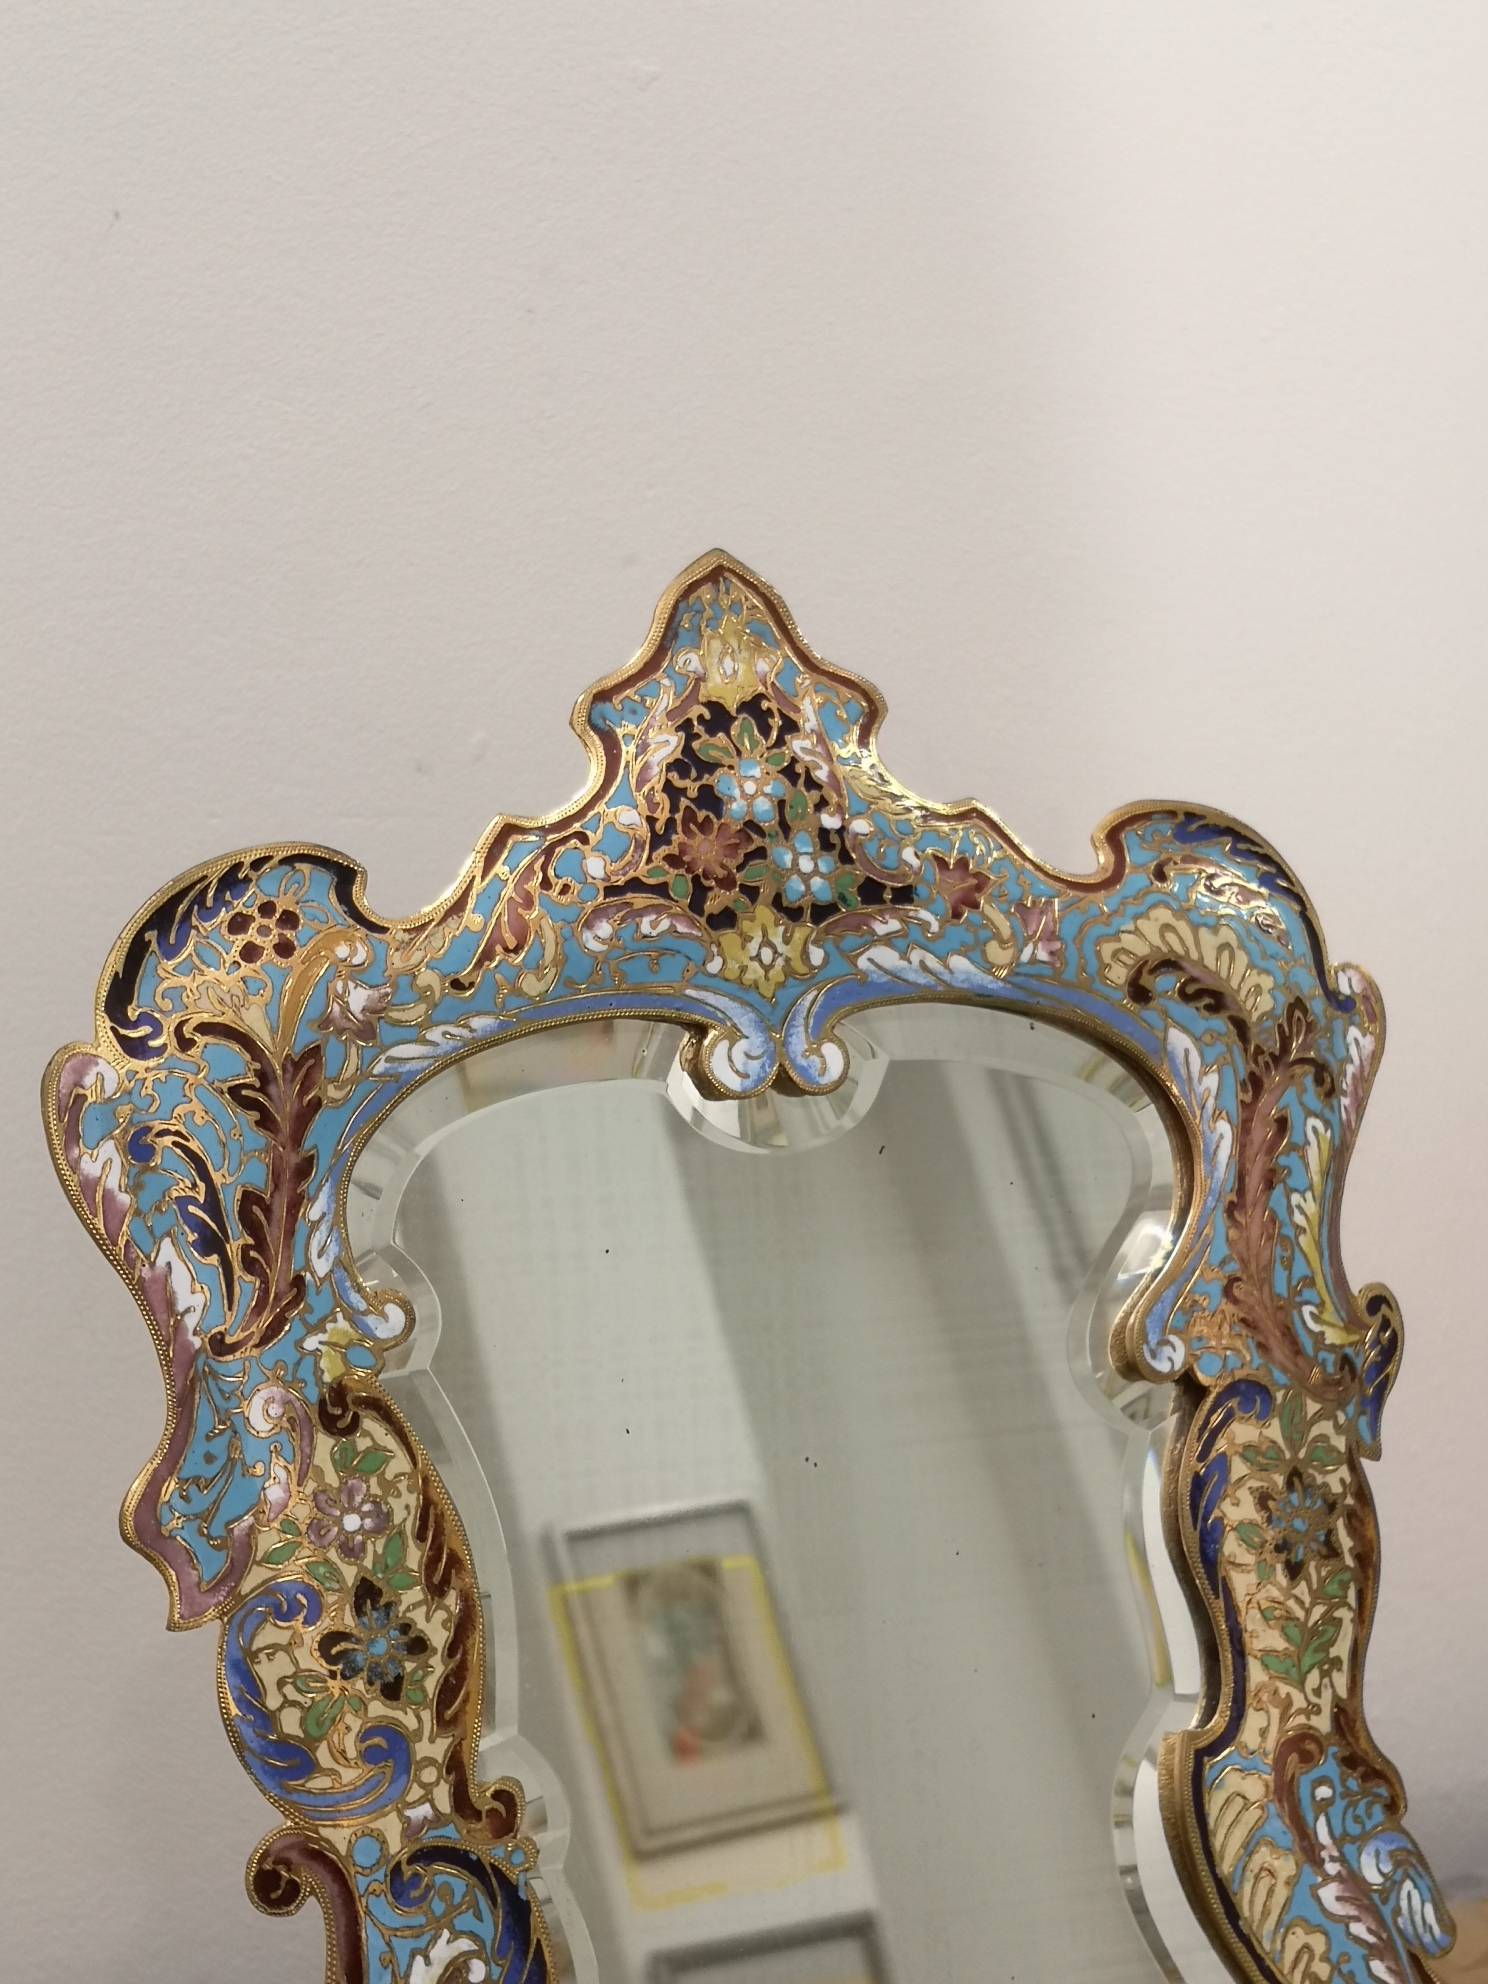 19th Century French Champleve Enamel Dressing Mirror